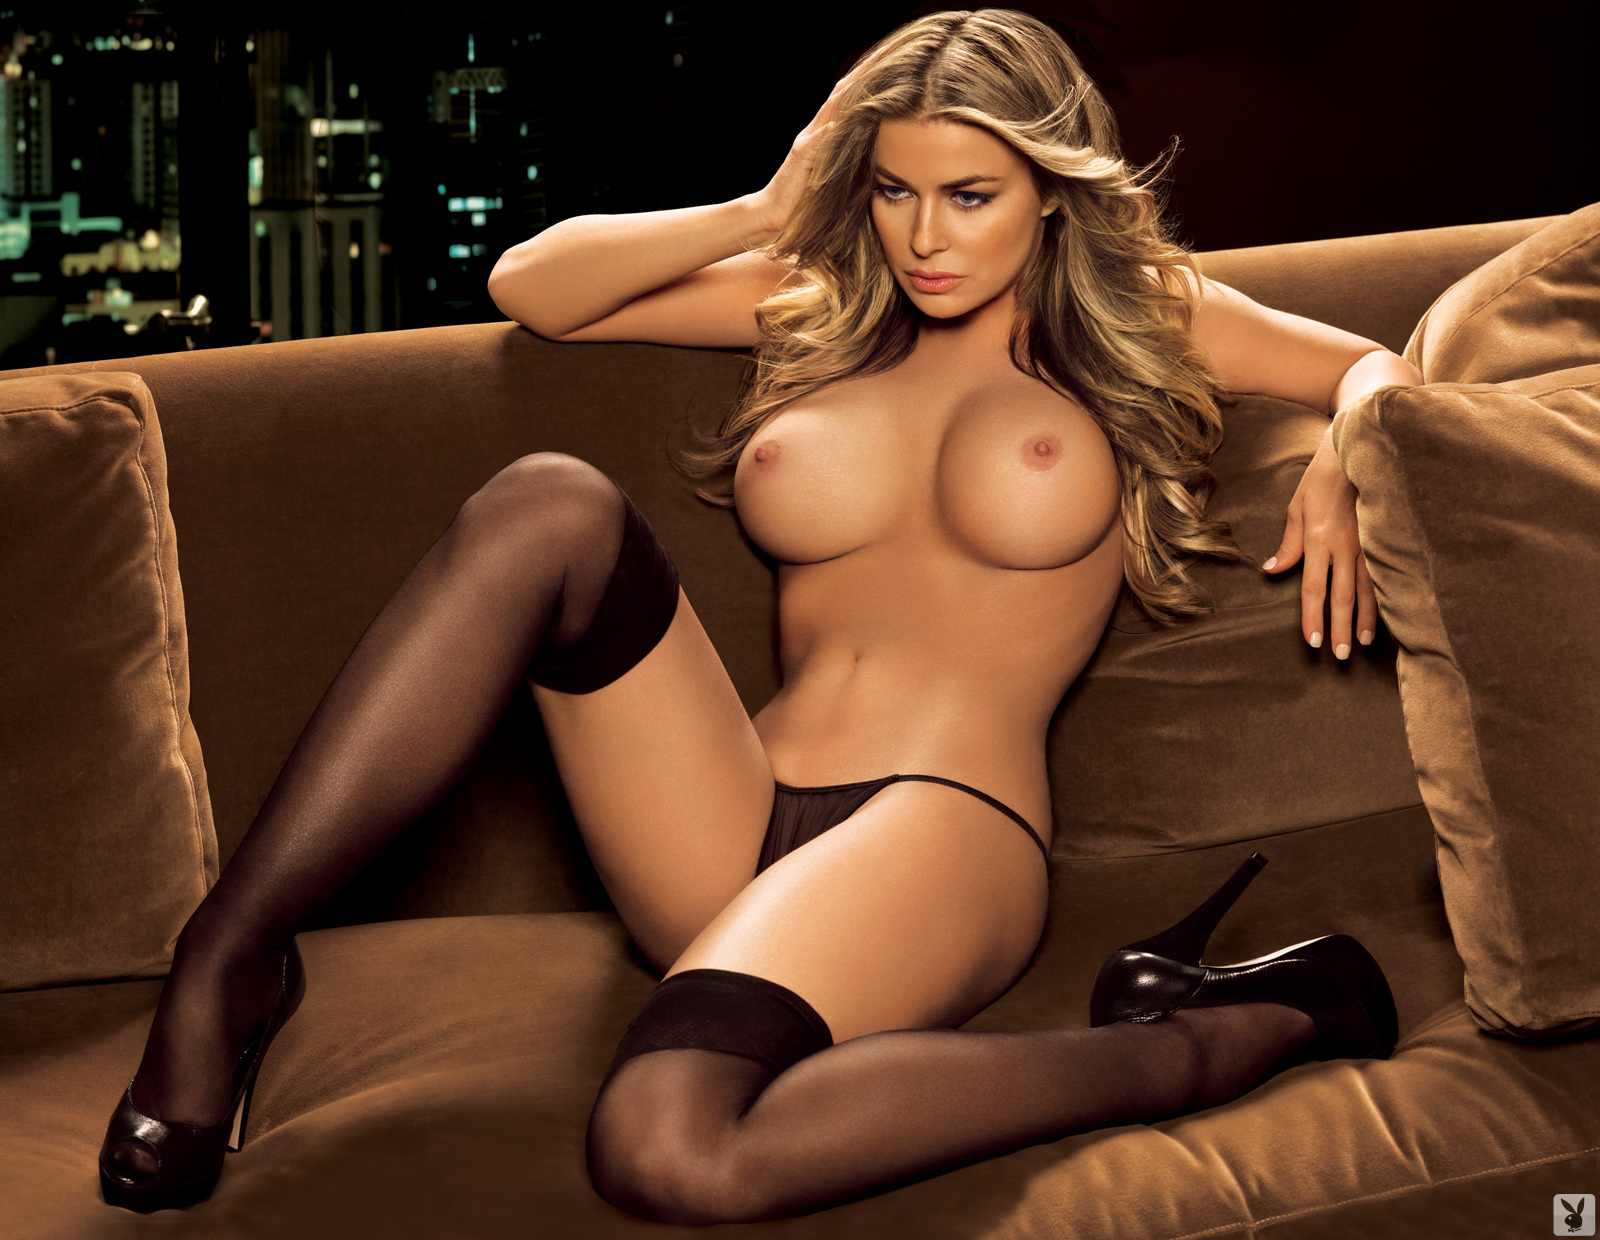 Nude carmen electra photos you have